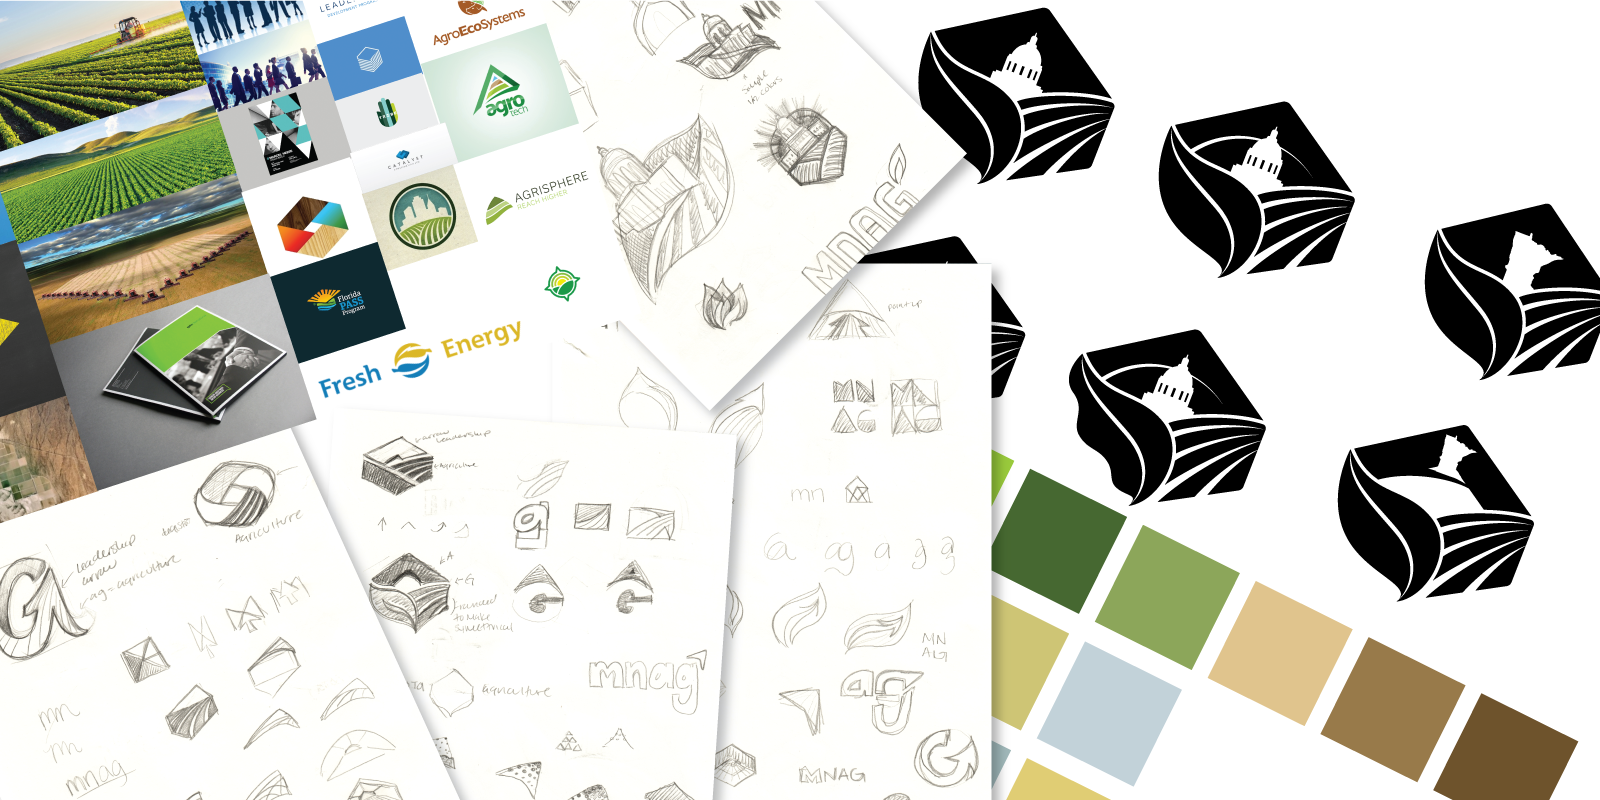 A collage of the moodboard, sketches, digital sketches, and color palette options